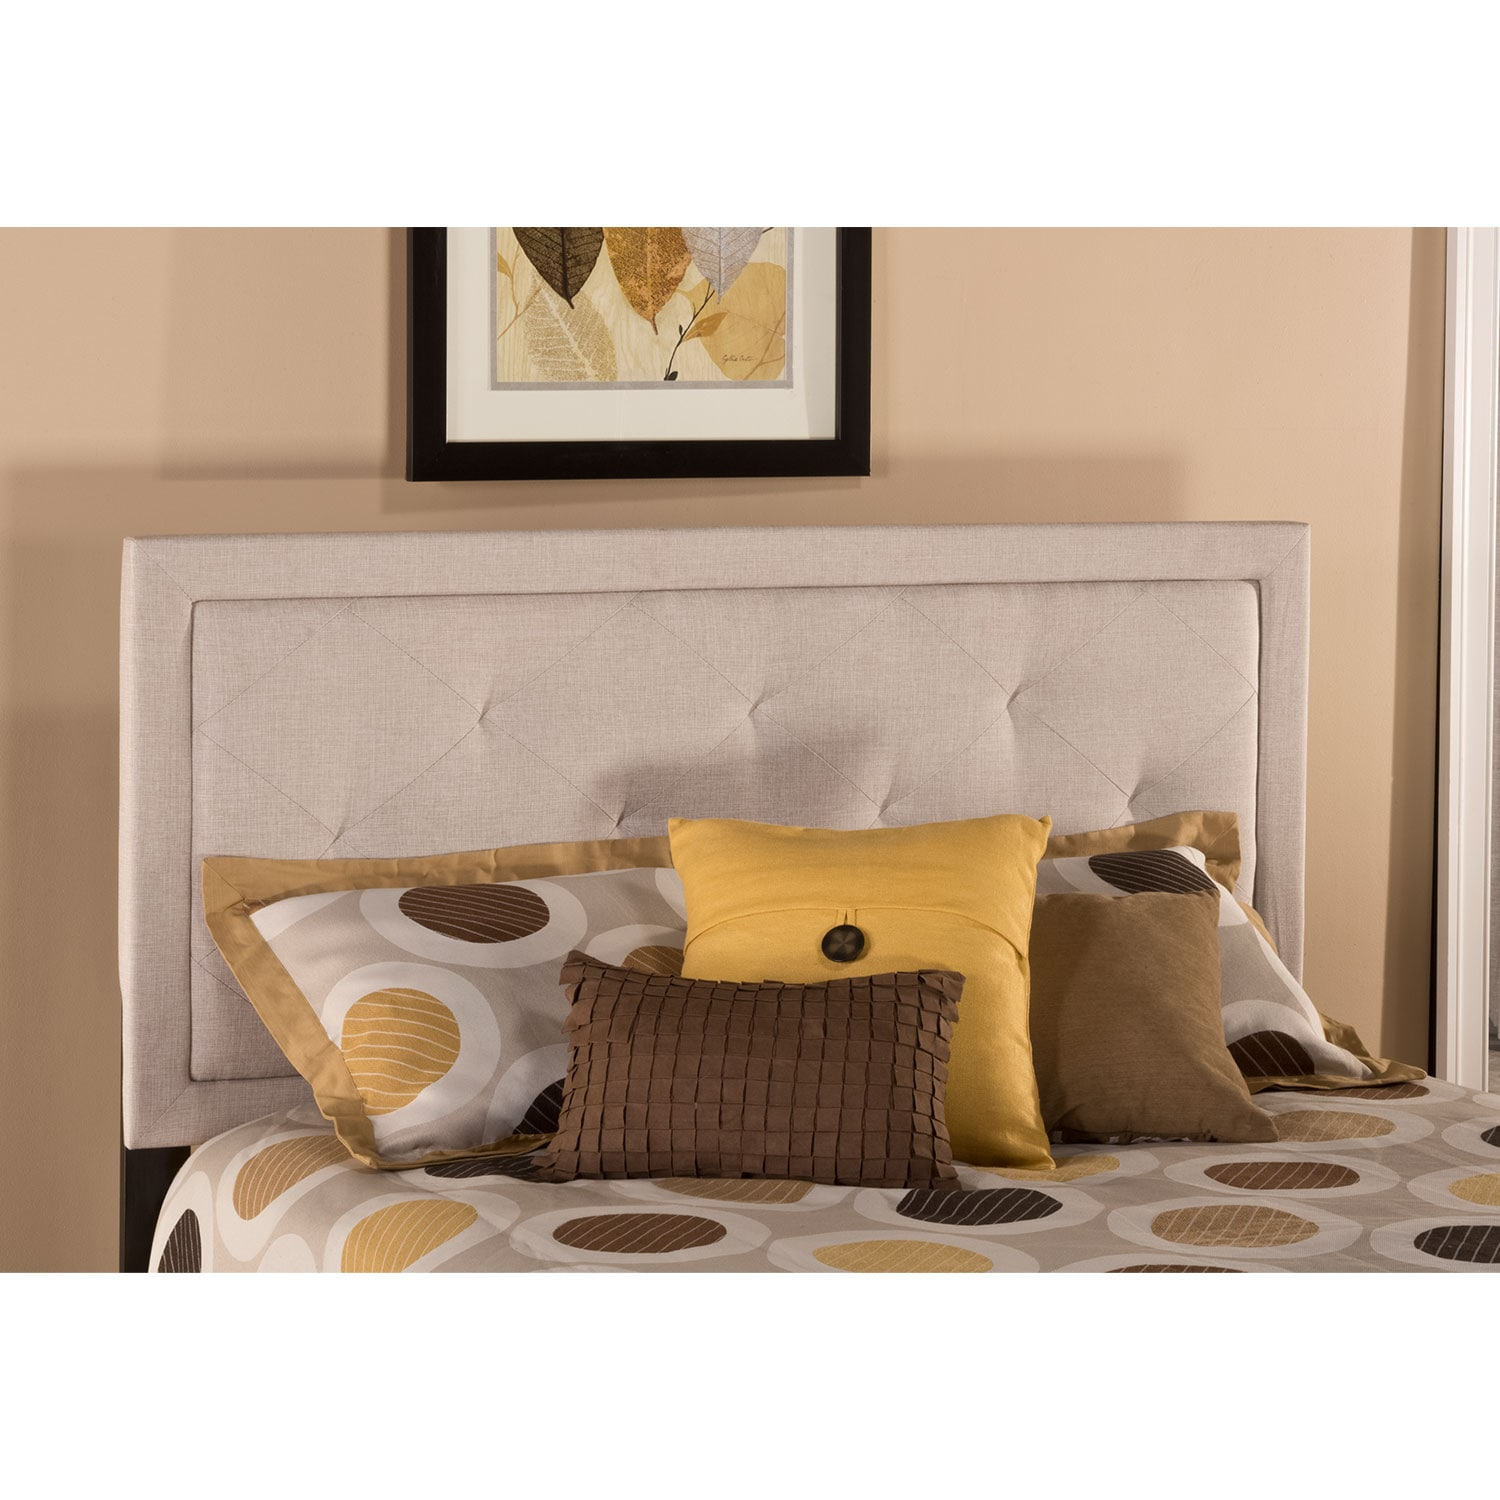 Bedroom Furniture - Becker Queen Headboard - Cream